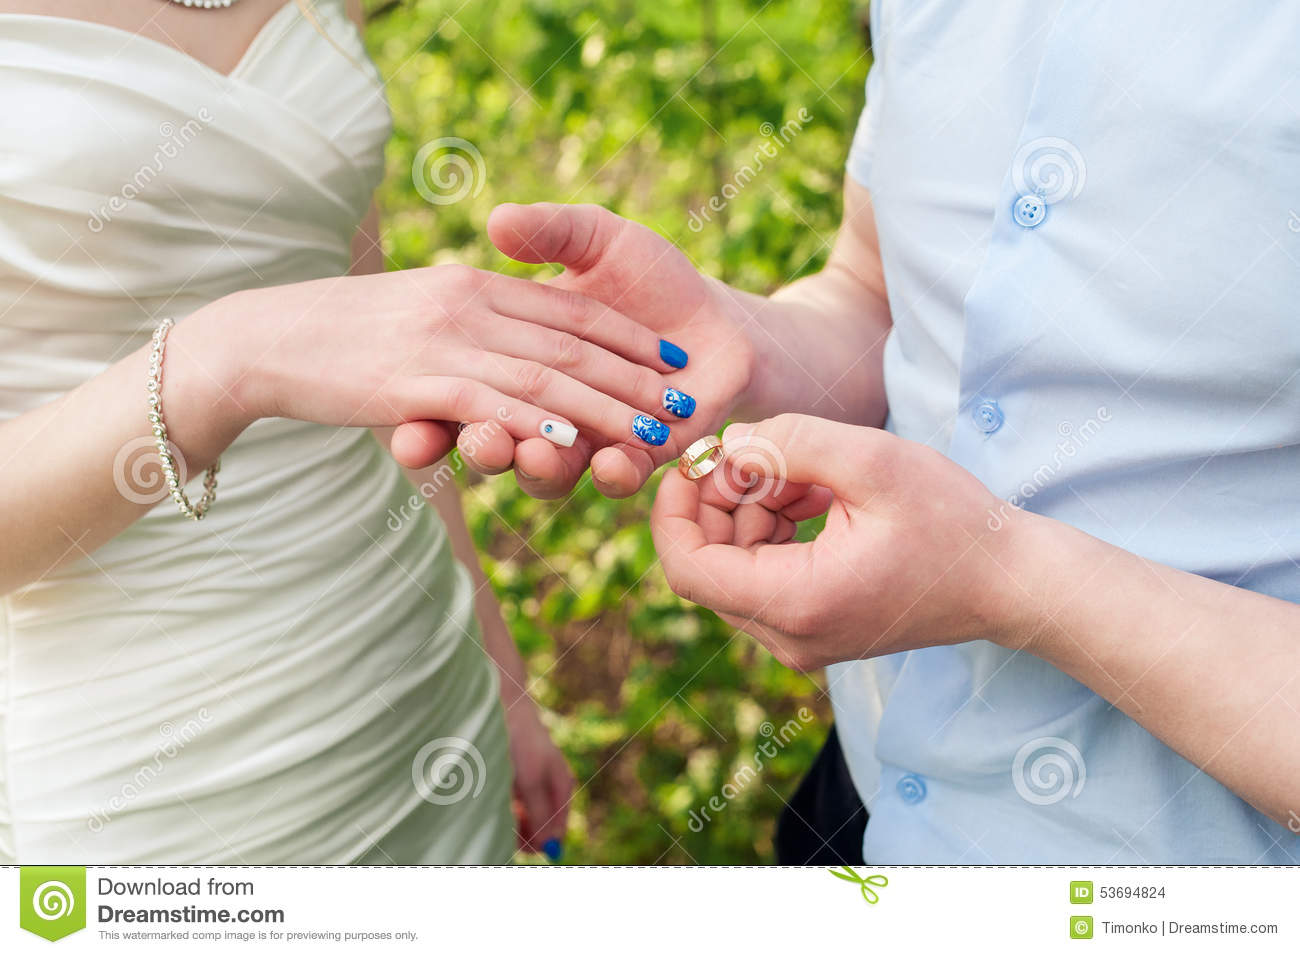 groom dresses bride golden wedding ring at the ceremony stock photo